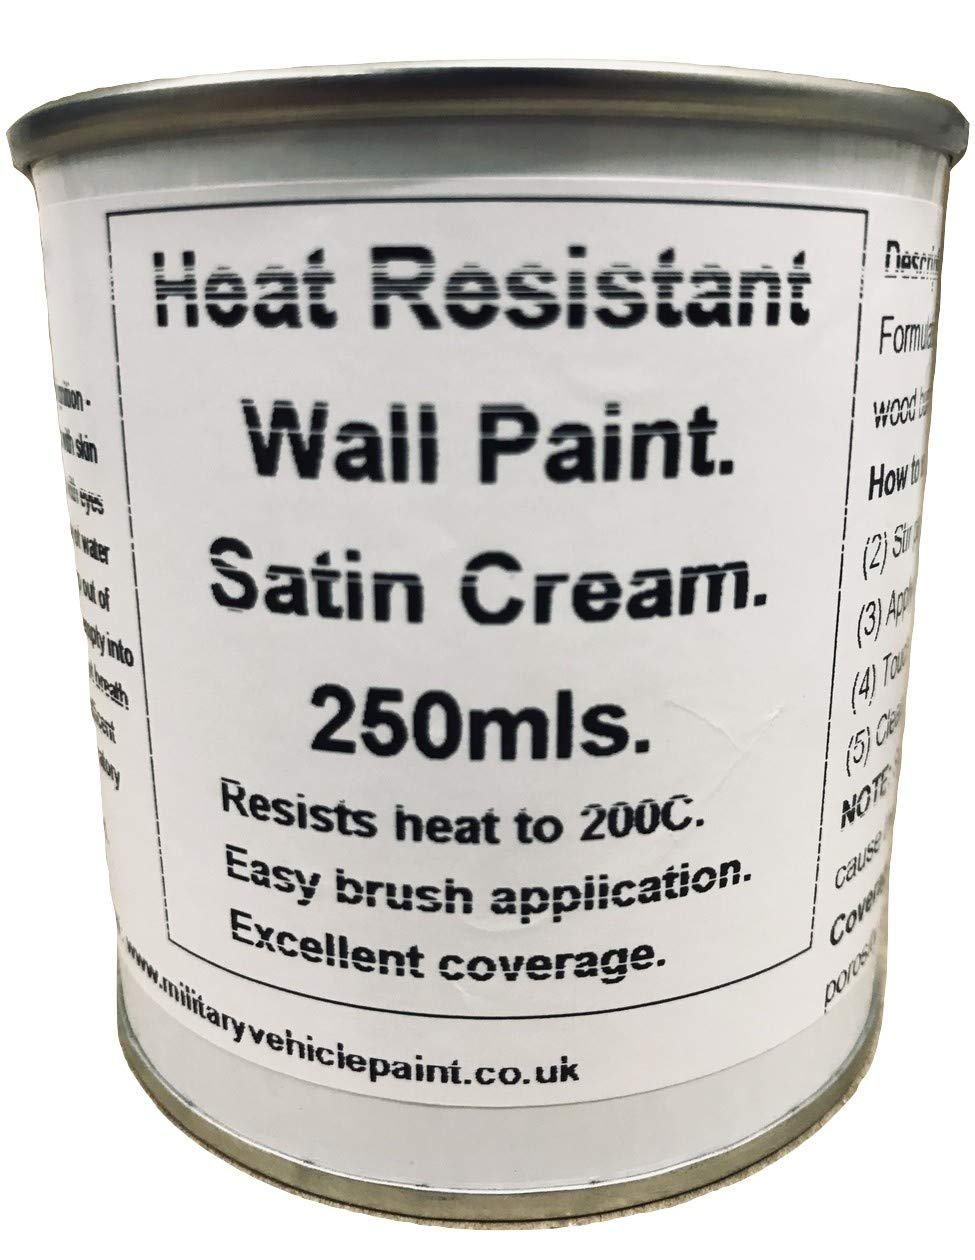 1 x 250ml Satin Cream Heat Resistant Wall Paint. Wood Burner Stove Alcove. Brick, concrete, plaster, cement board, rendering, metal, timber etc. Fascinating Finishes Ltd